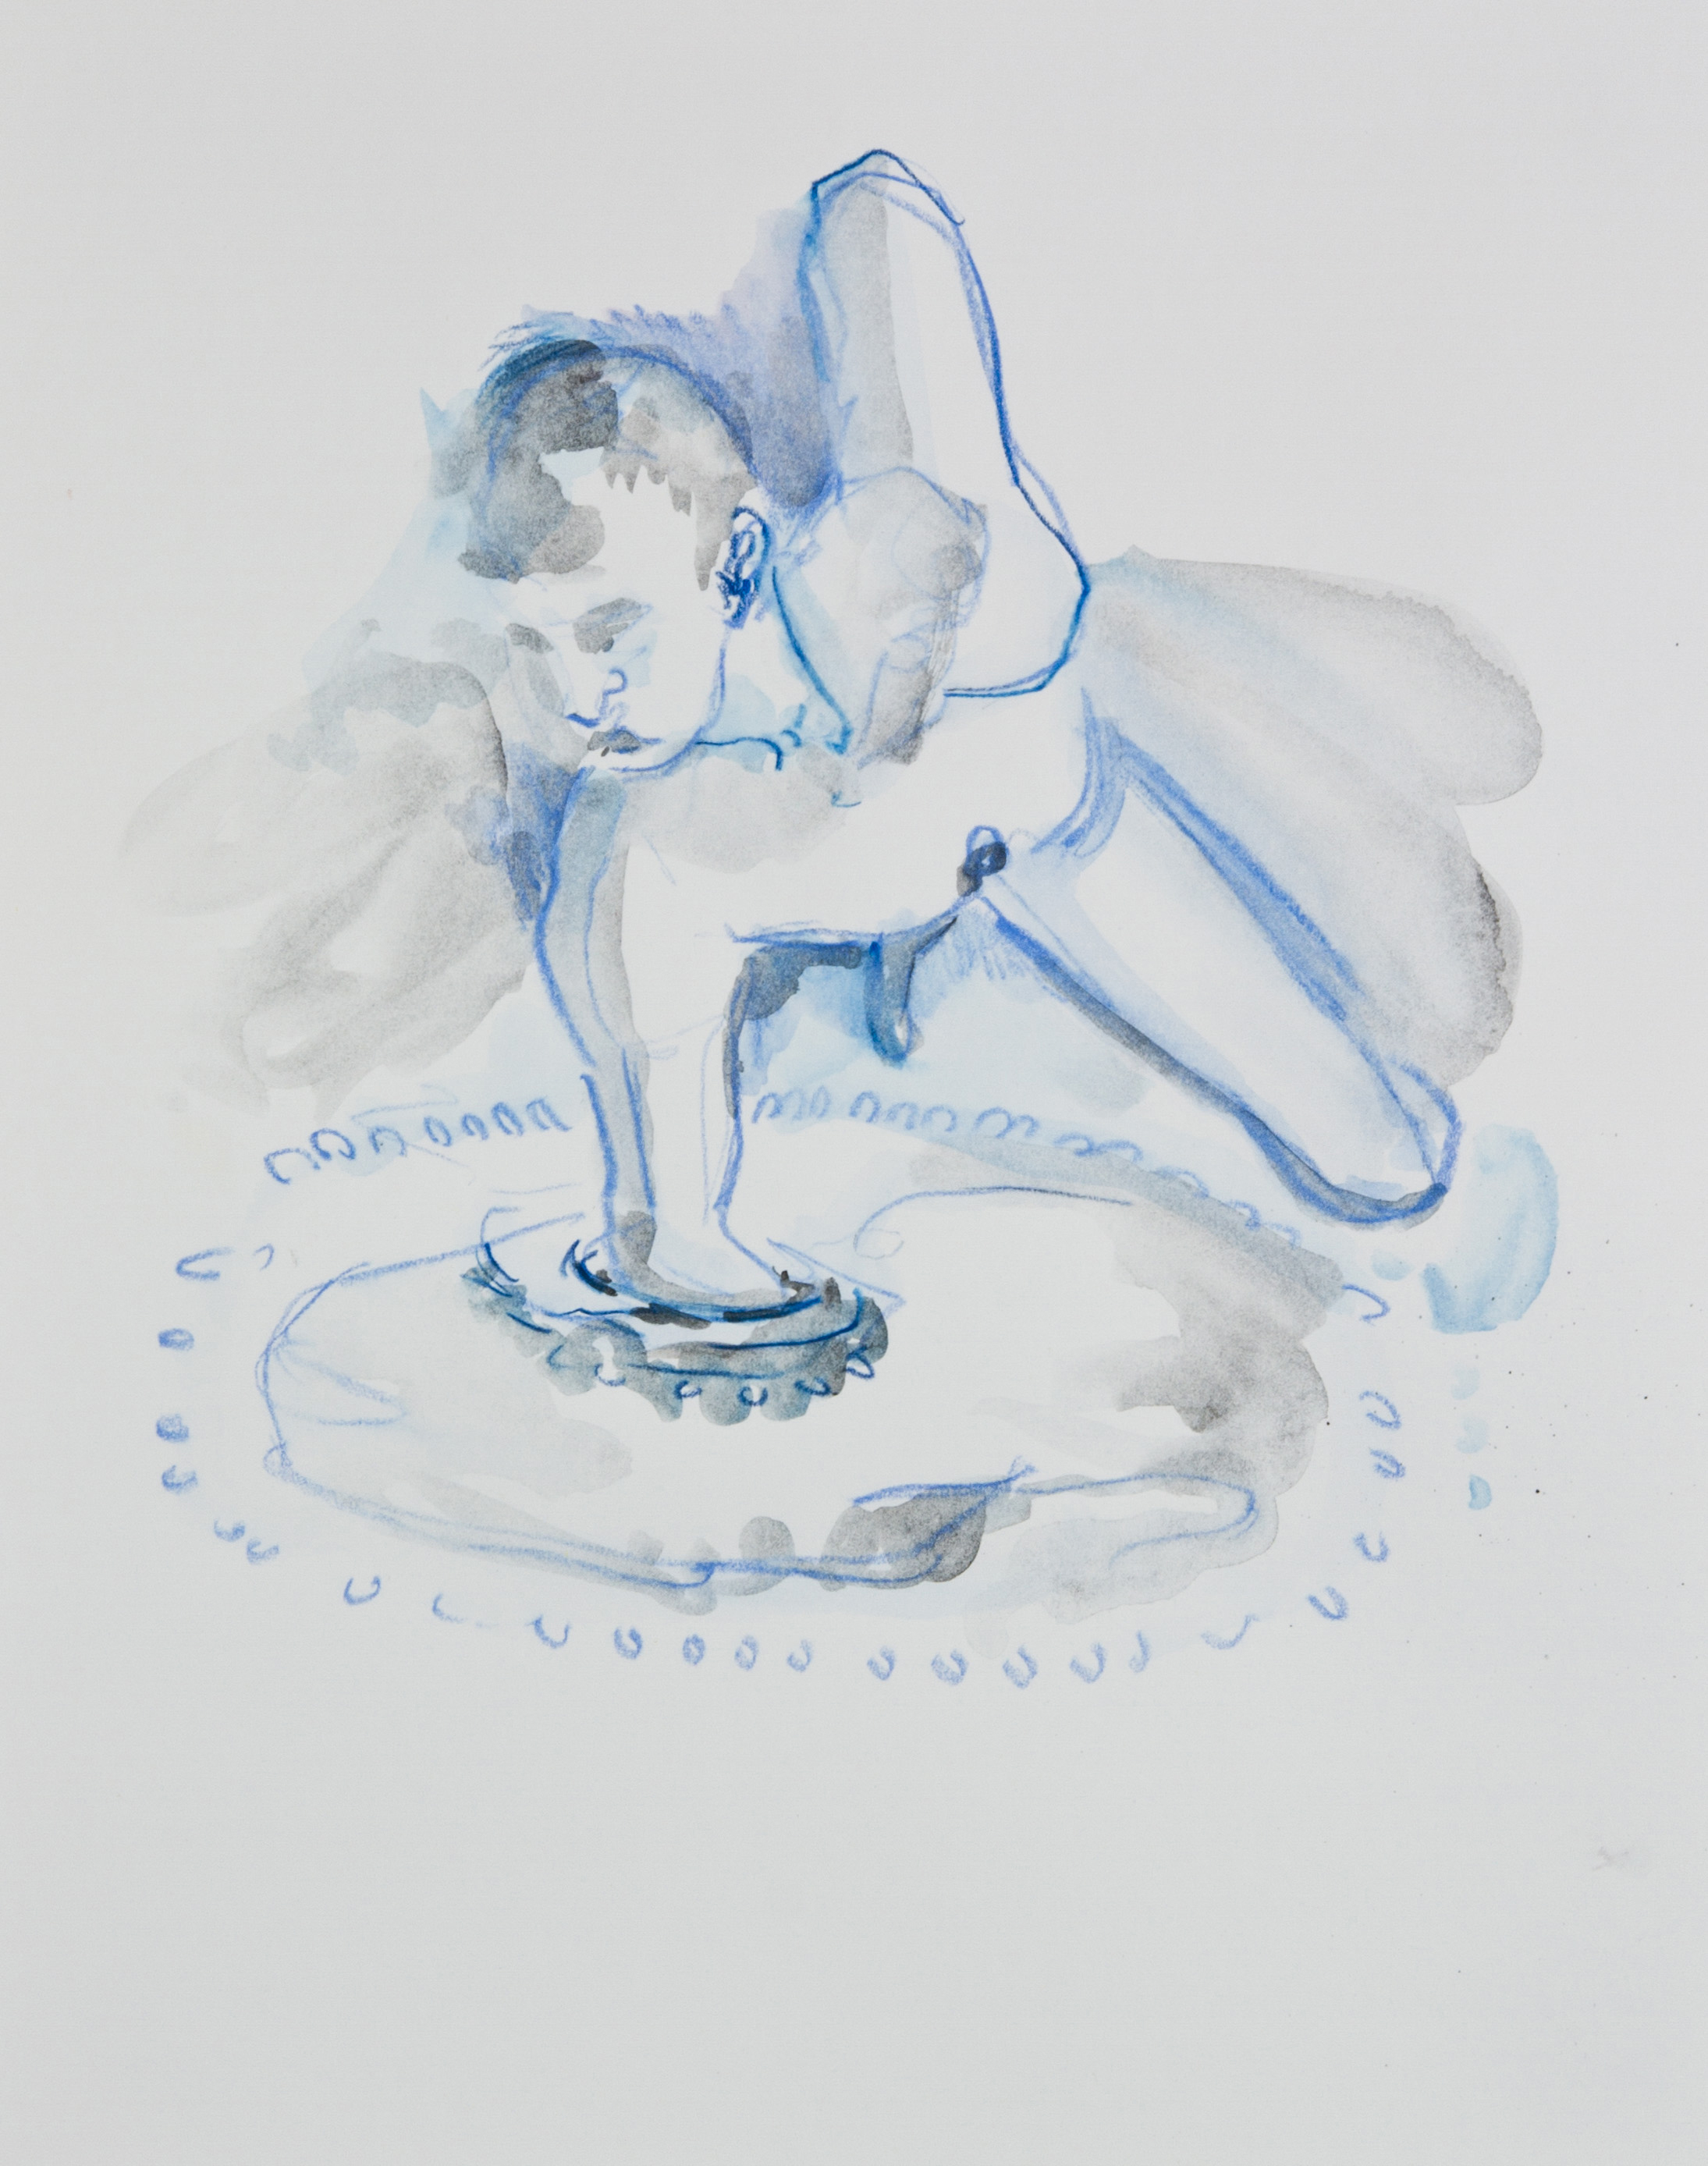 The Pool, 2013, graphite, crayon and watercolor pencil on paper, 11x14 inches